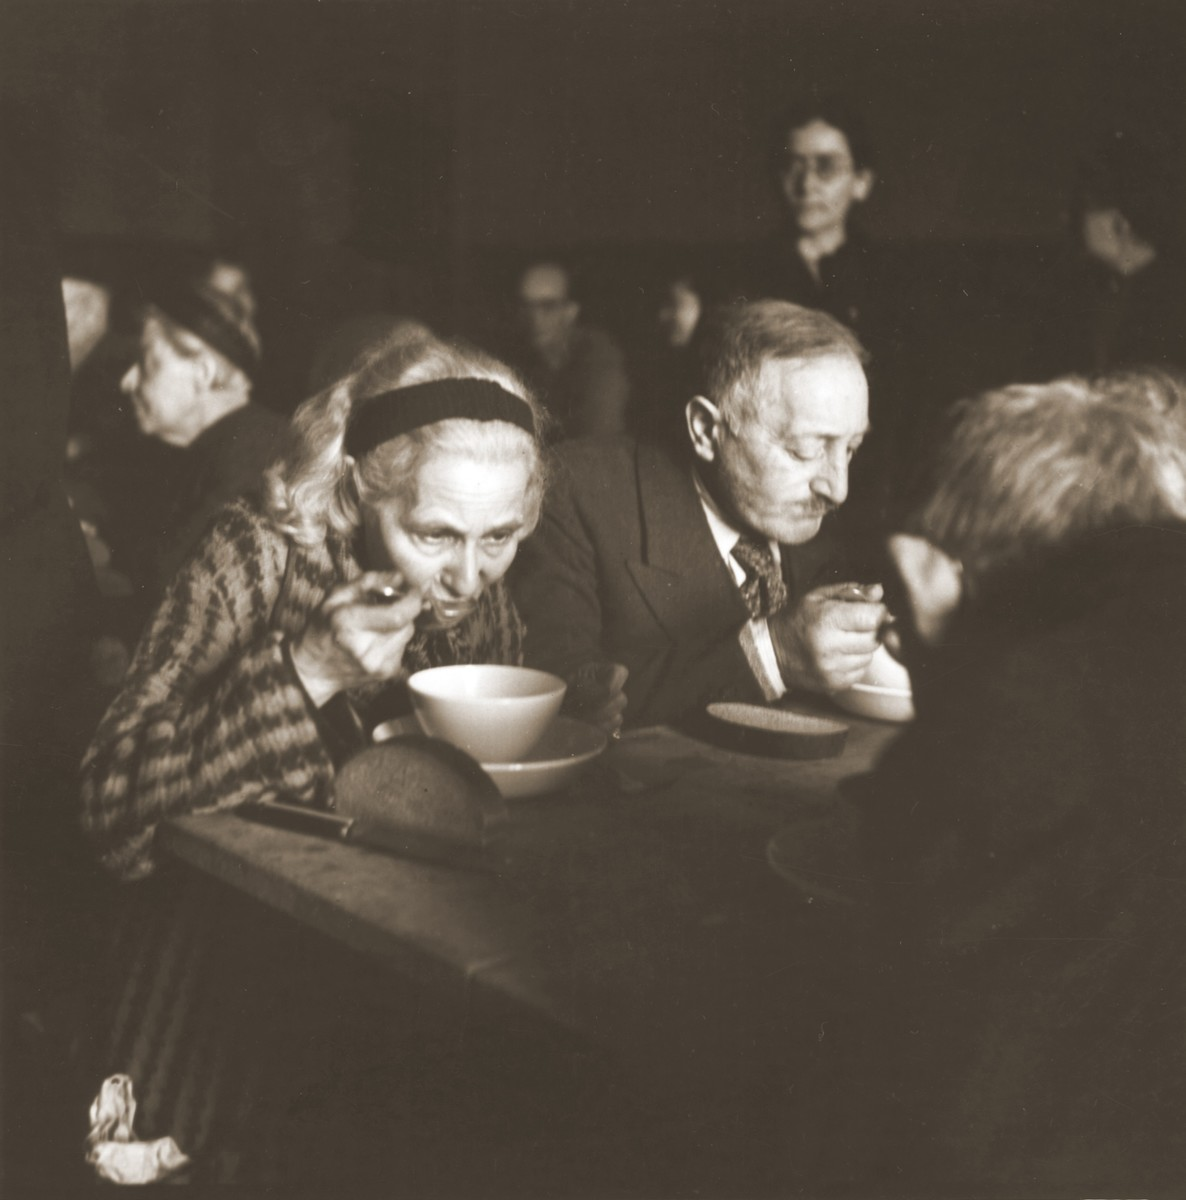 Elderly Jews rescued from Theresienstadt enjoy a warm meal in the Hadwigschulhaus in St. Gallen.